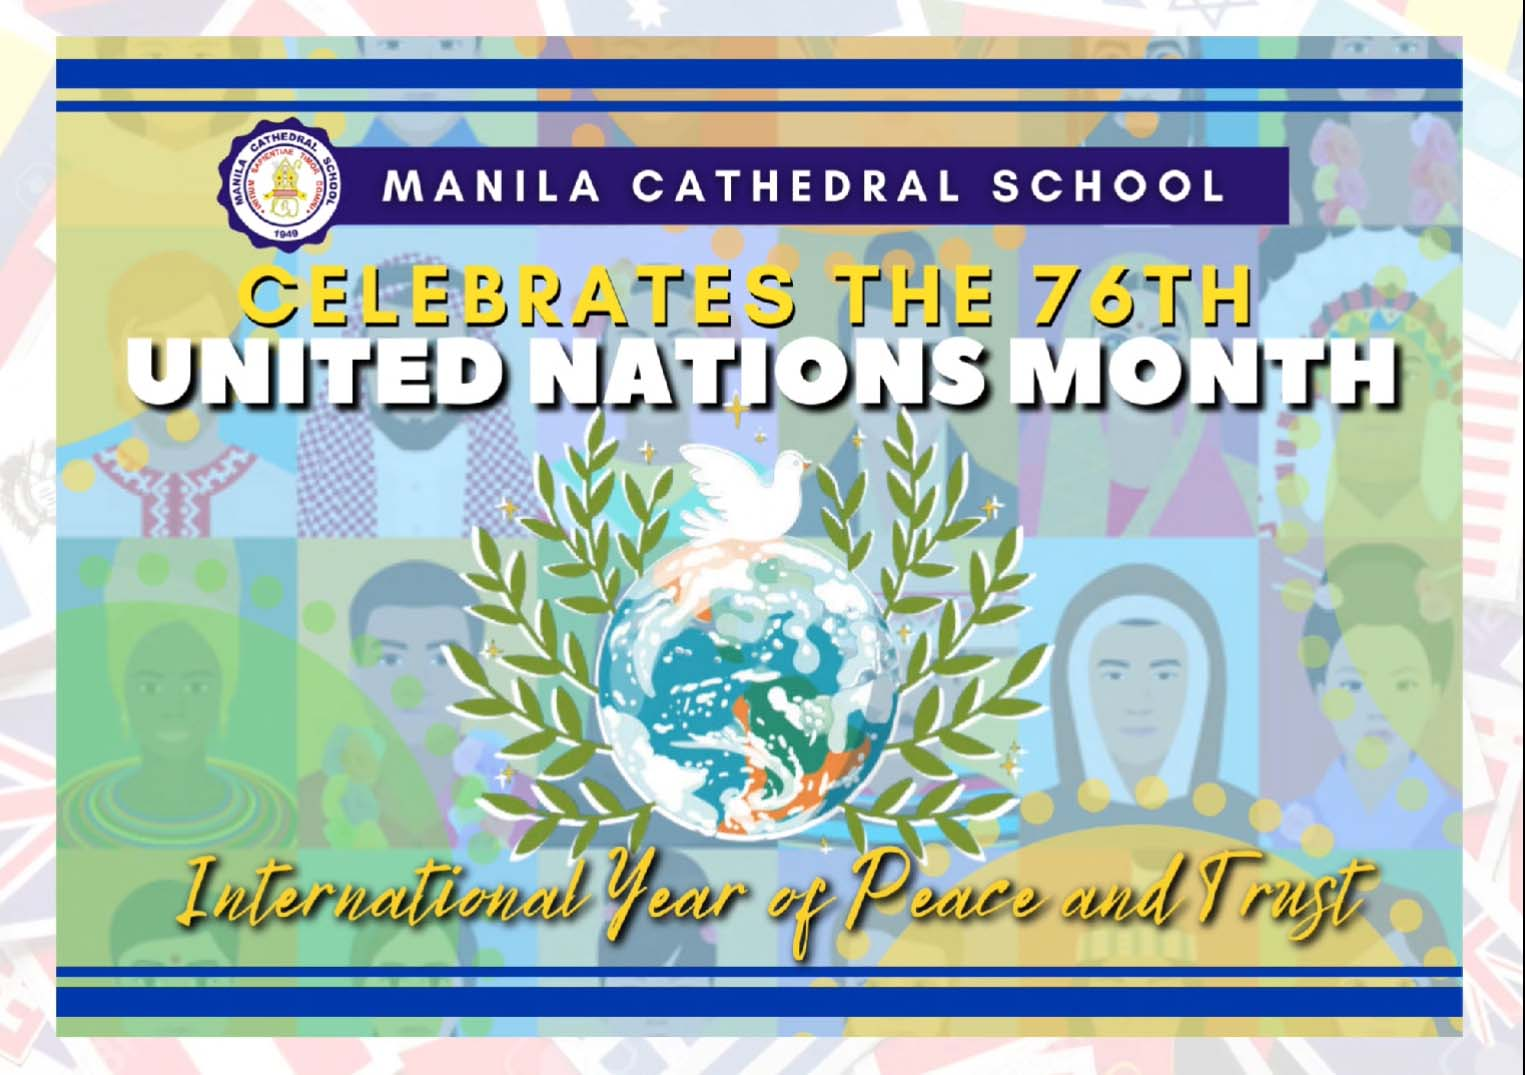 Today marks the opening of the 76th UNITED NATIONS MONTH CELEBRATION with the theme: